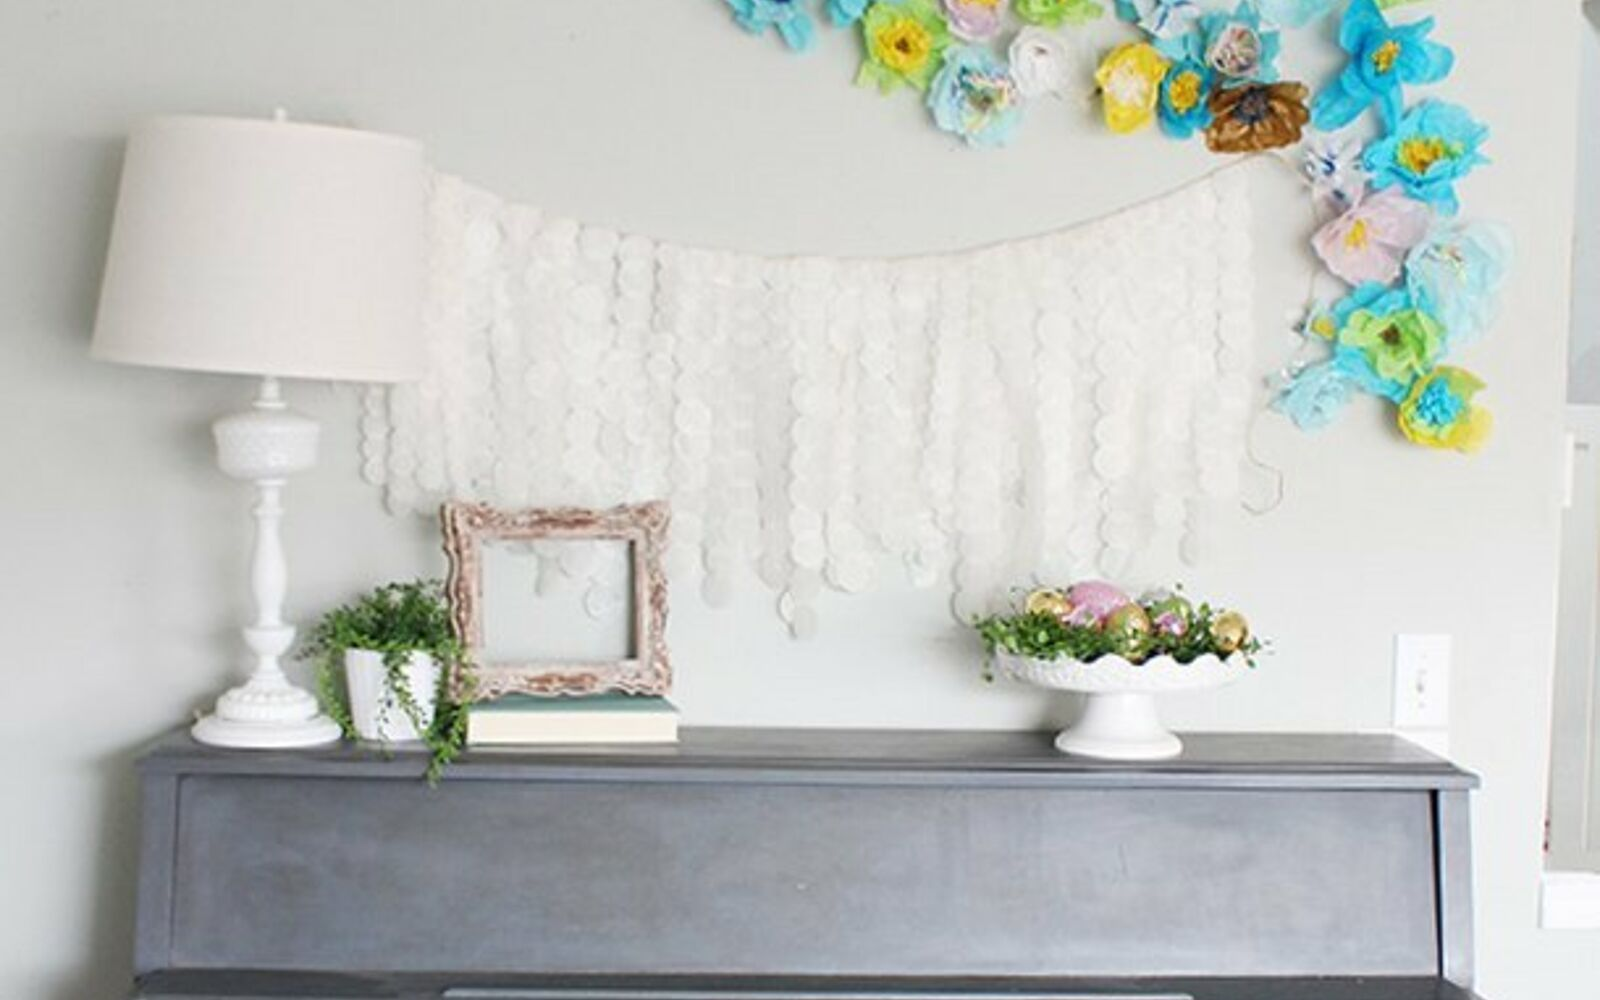 s these are the hottest diy spring trends of 2016, crafts, seasonal holiday decor, Set a bright wall collage instead of a mantel